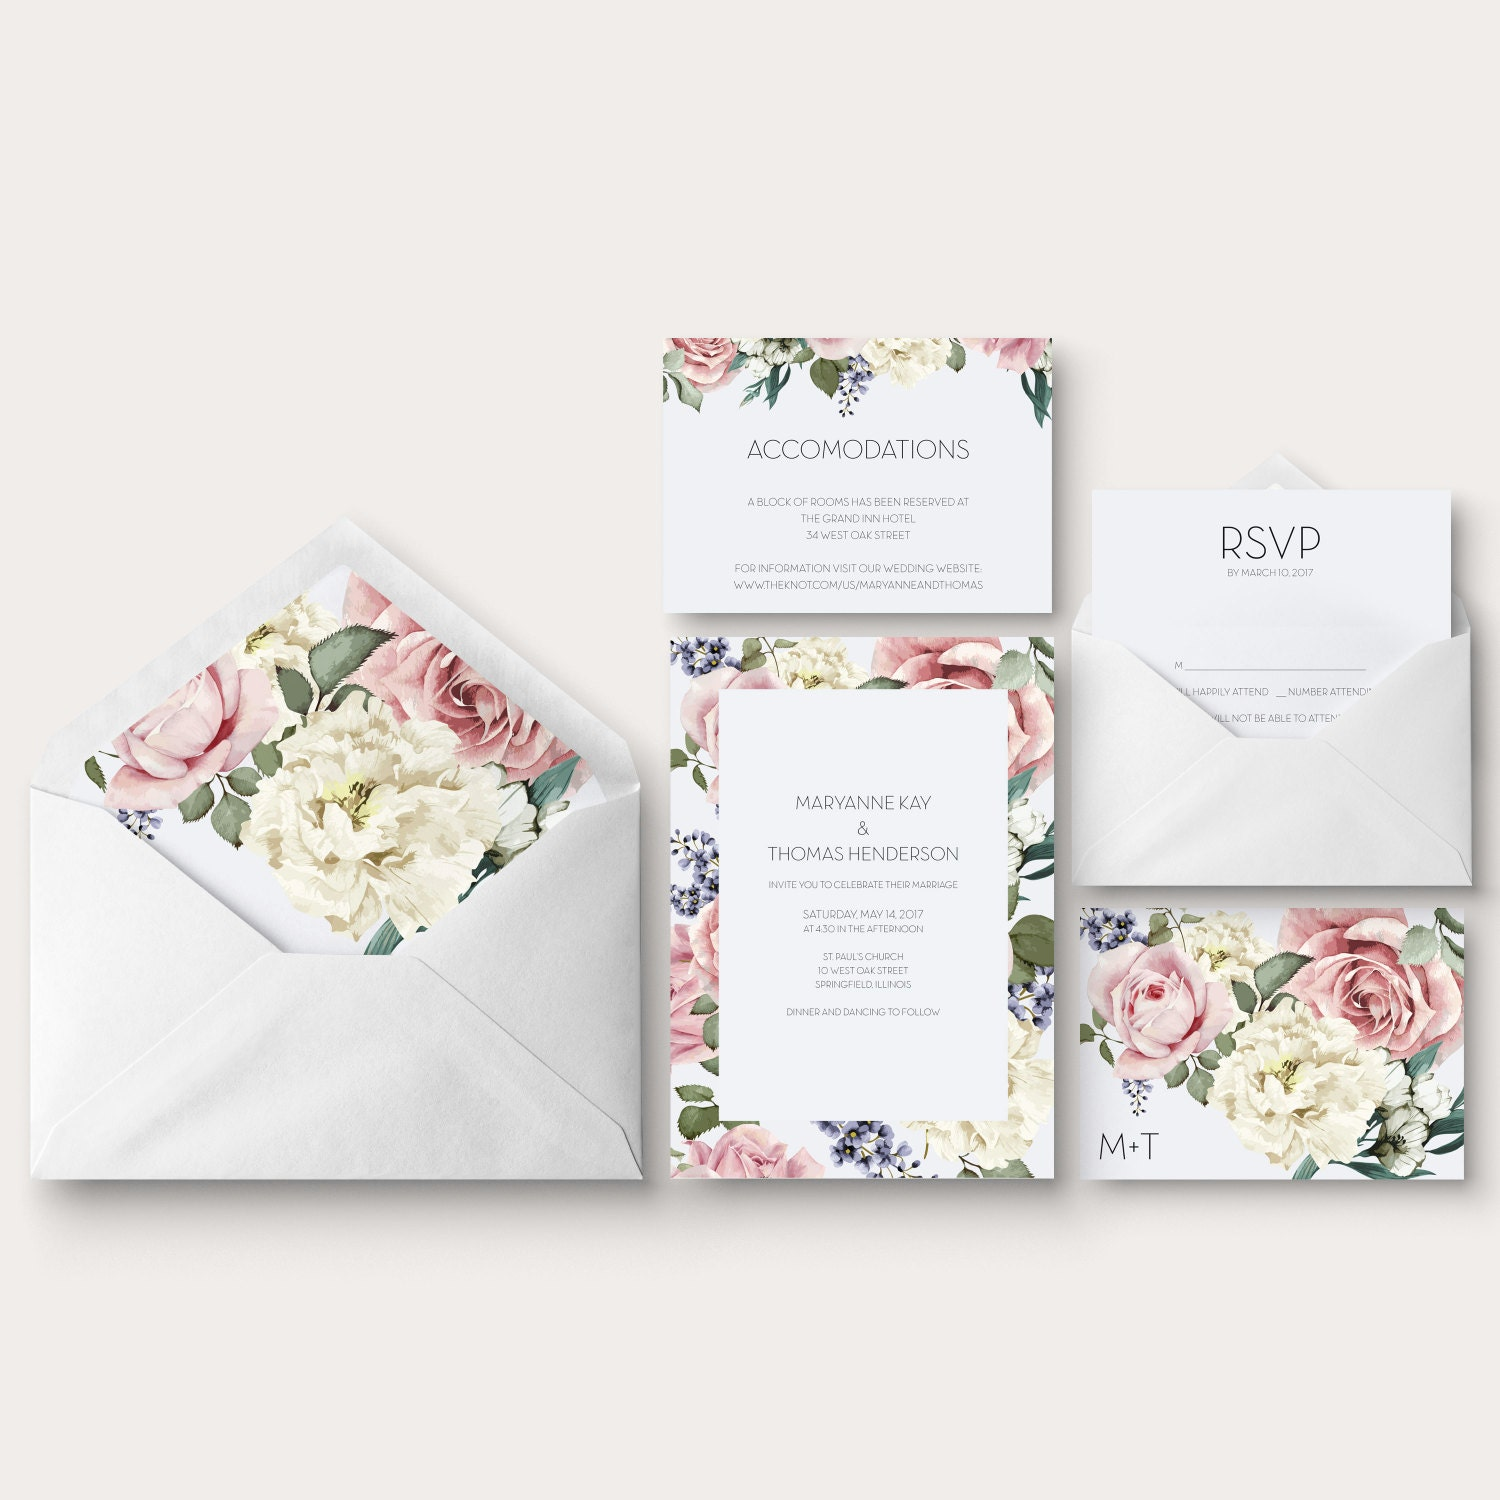 Wedding Invite Enclosures: Floral Chic Wedding Invitation Enclosure And Response Cards